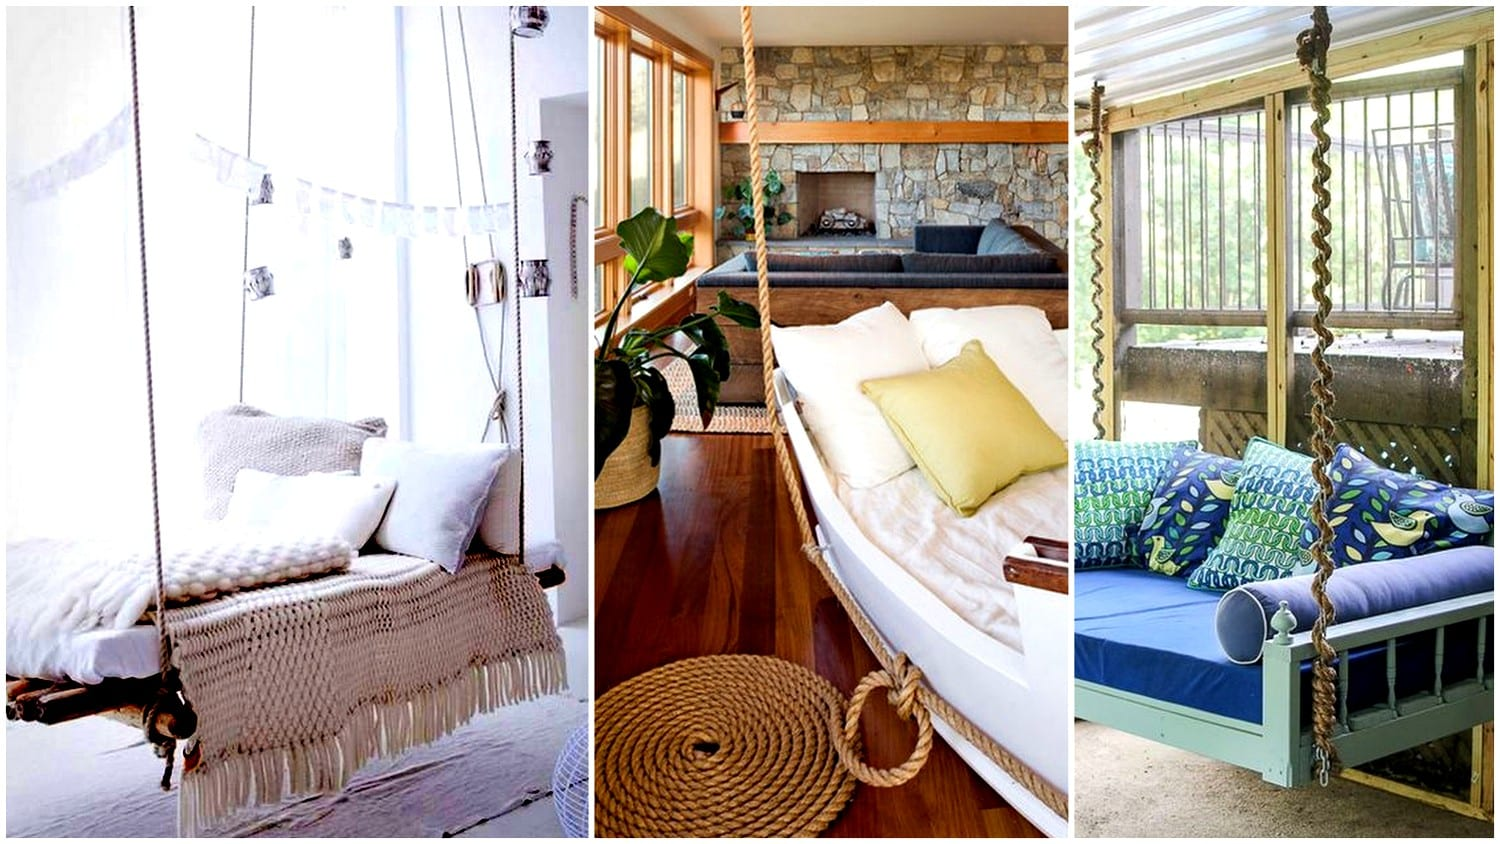 20 Insanely Cool Hanging Bed Ideas for a Soothing Sleep